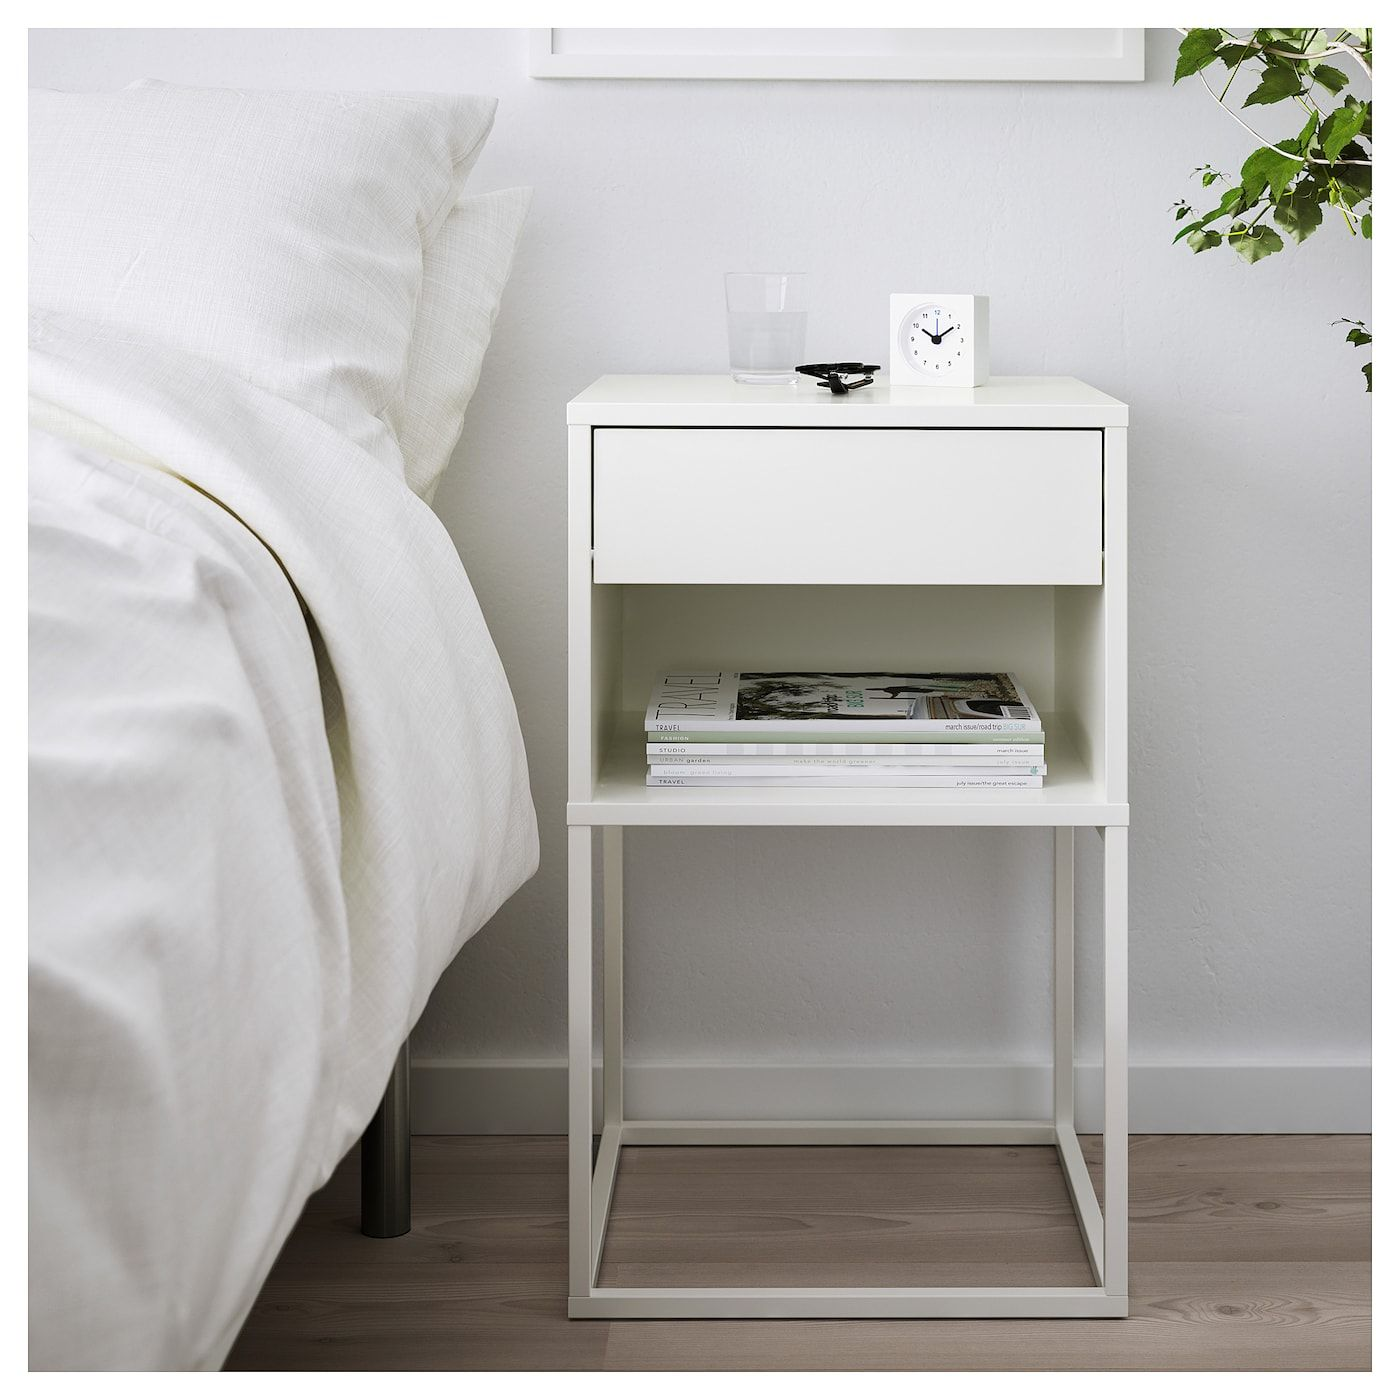 Vikhammer Nattbord Hvit Ikea White Bedside Table White Nightstand Bedroom Night Stands